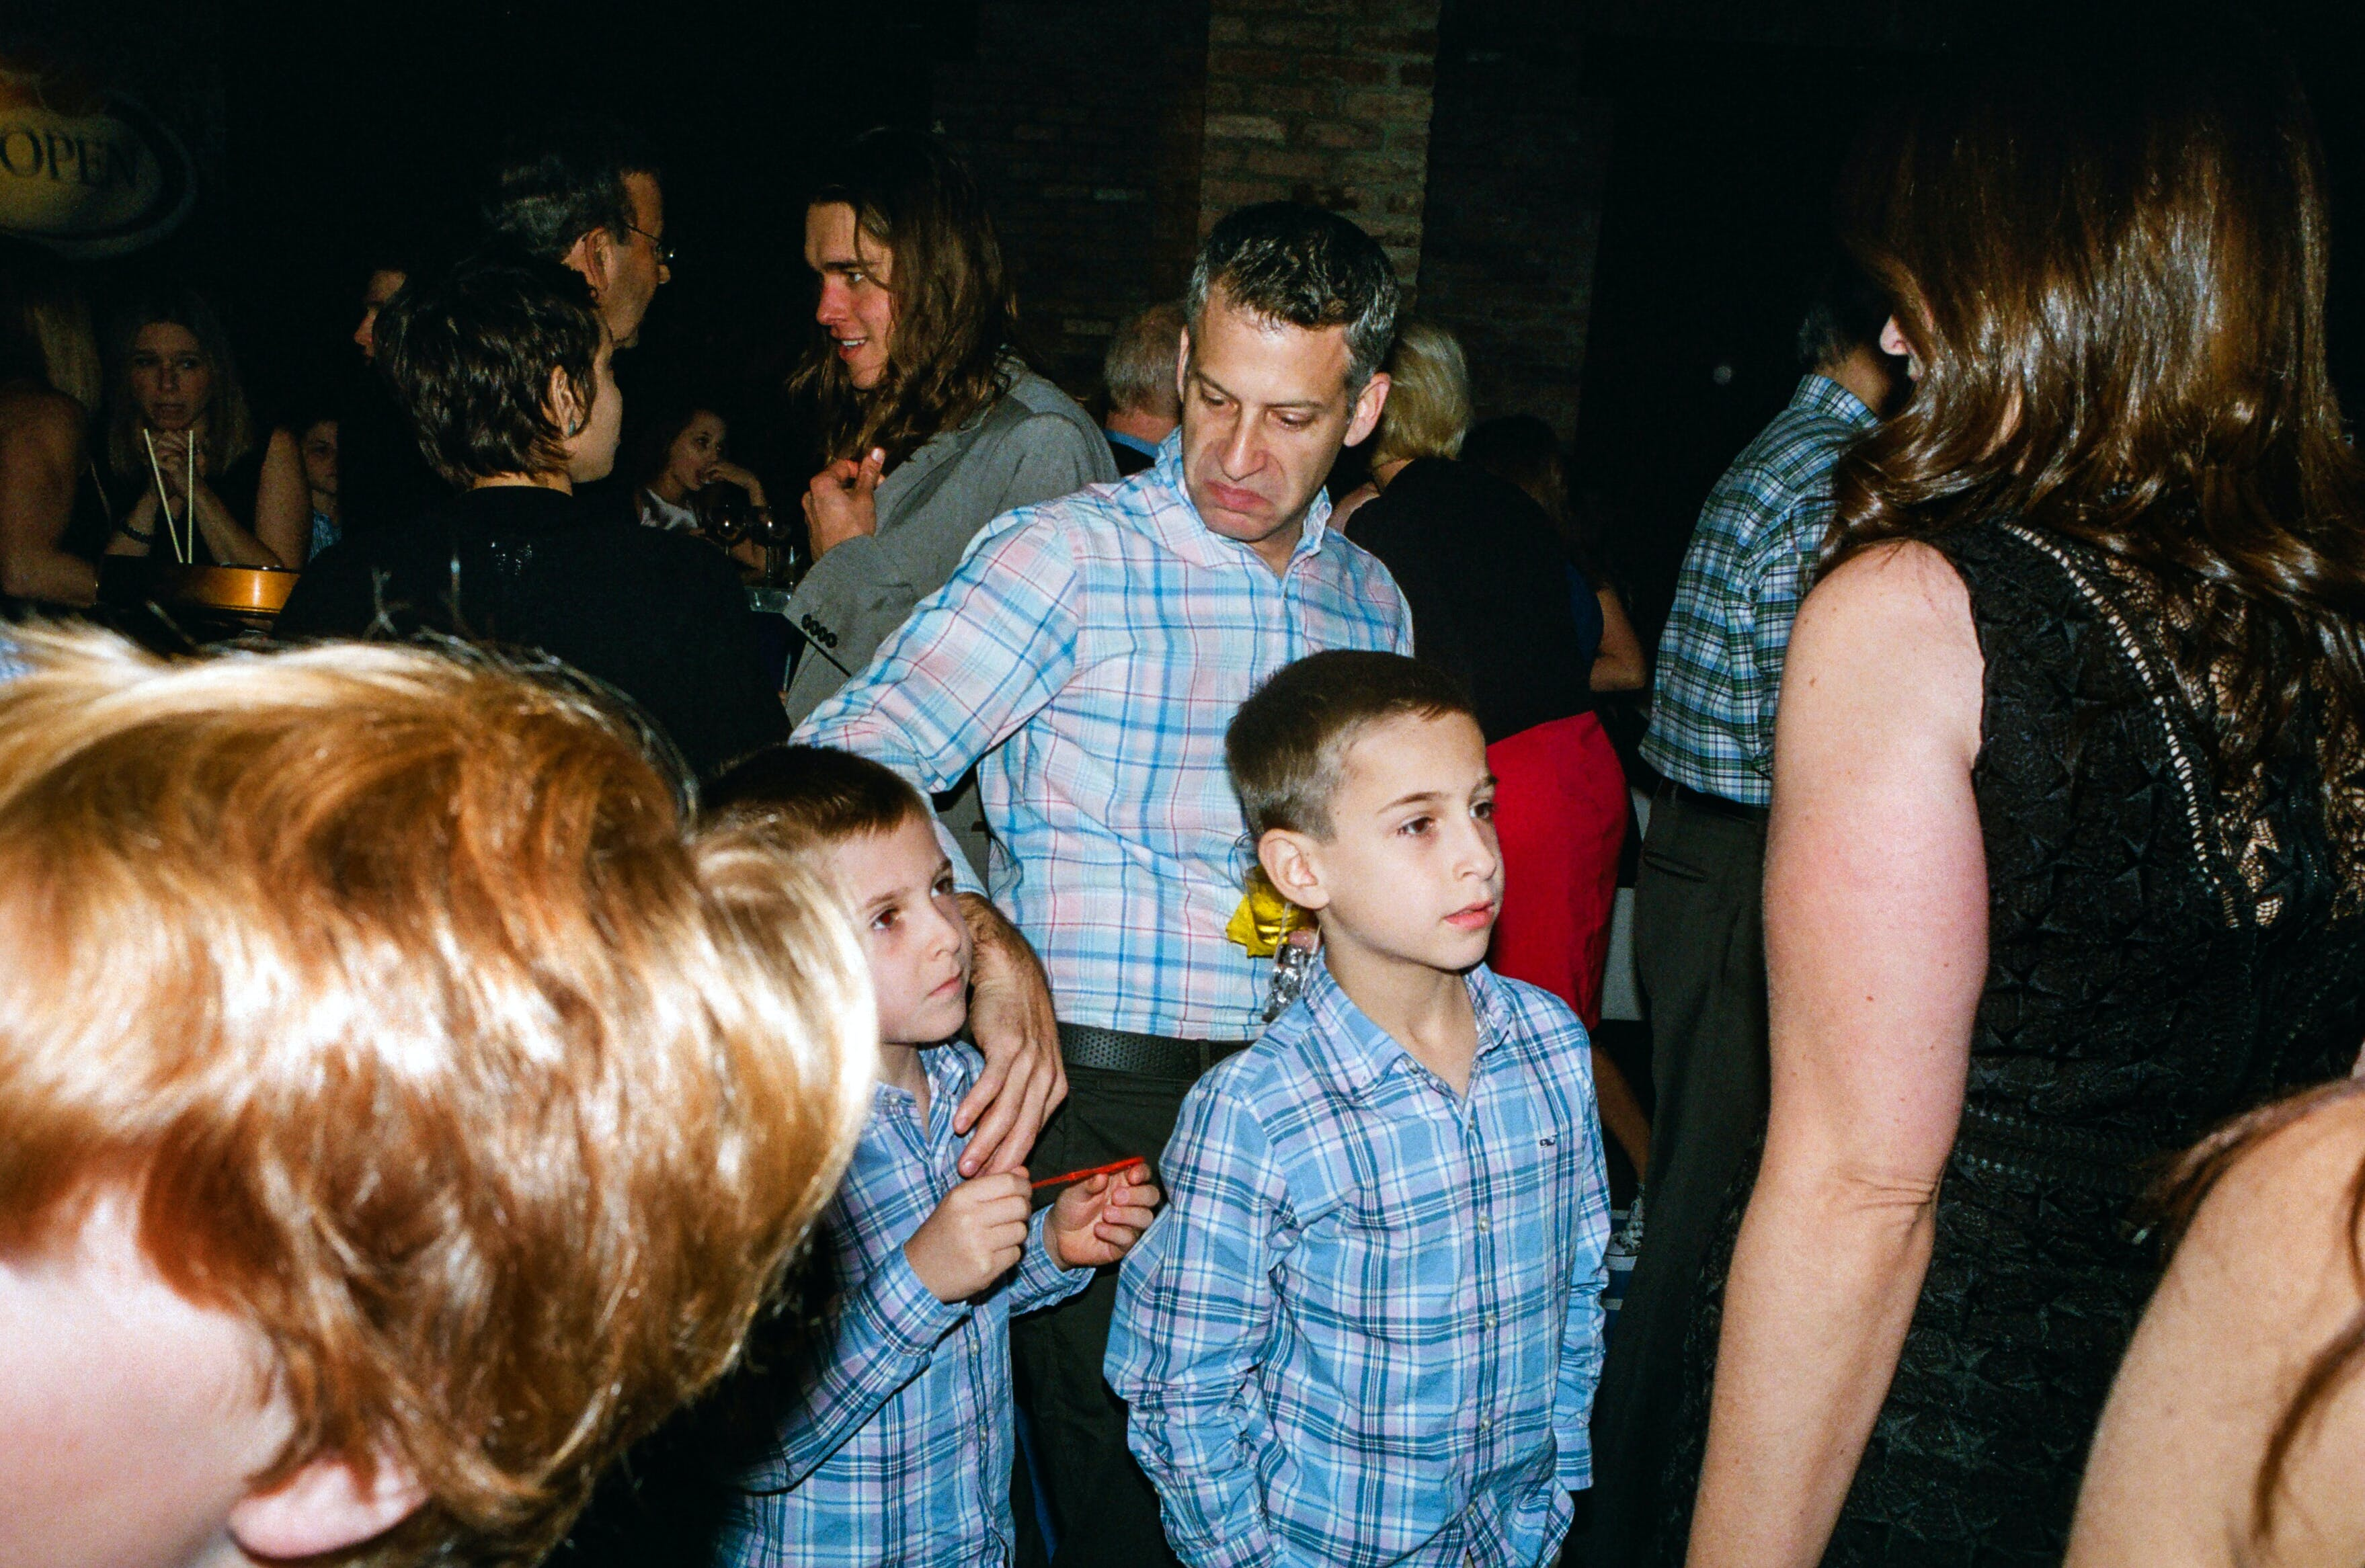 More plaid on the bar mitzvah party circuit.